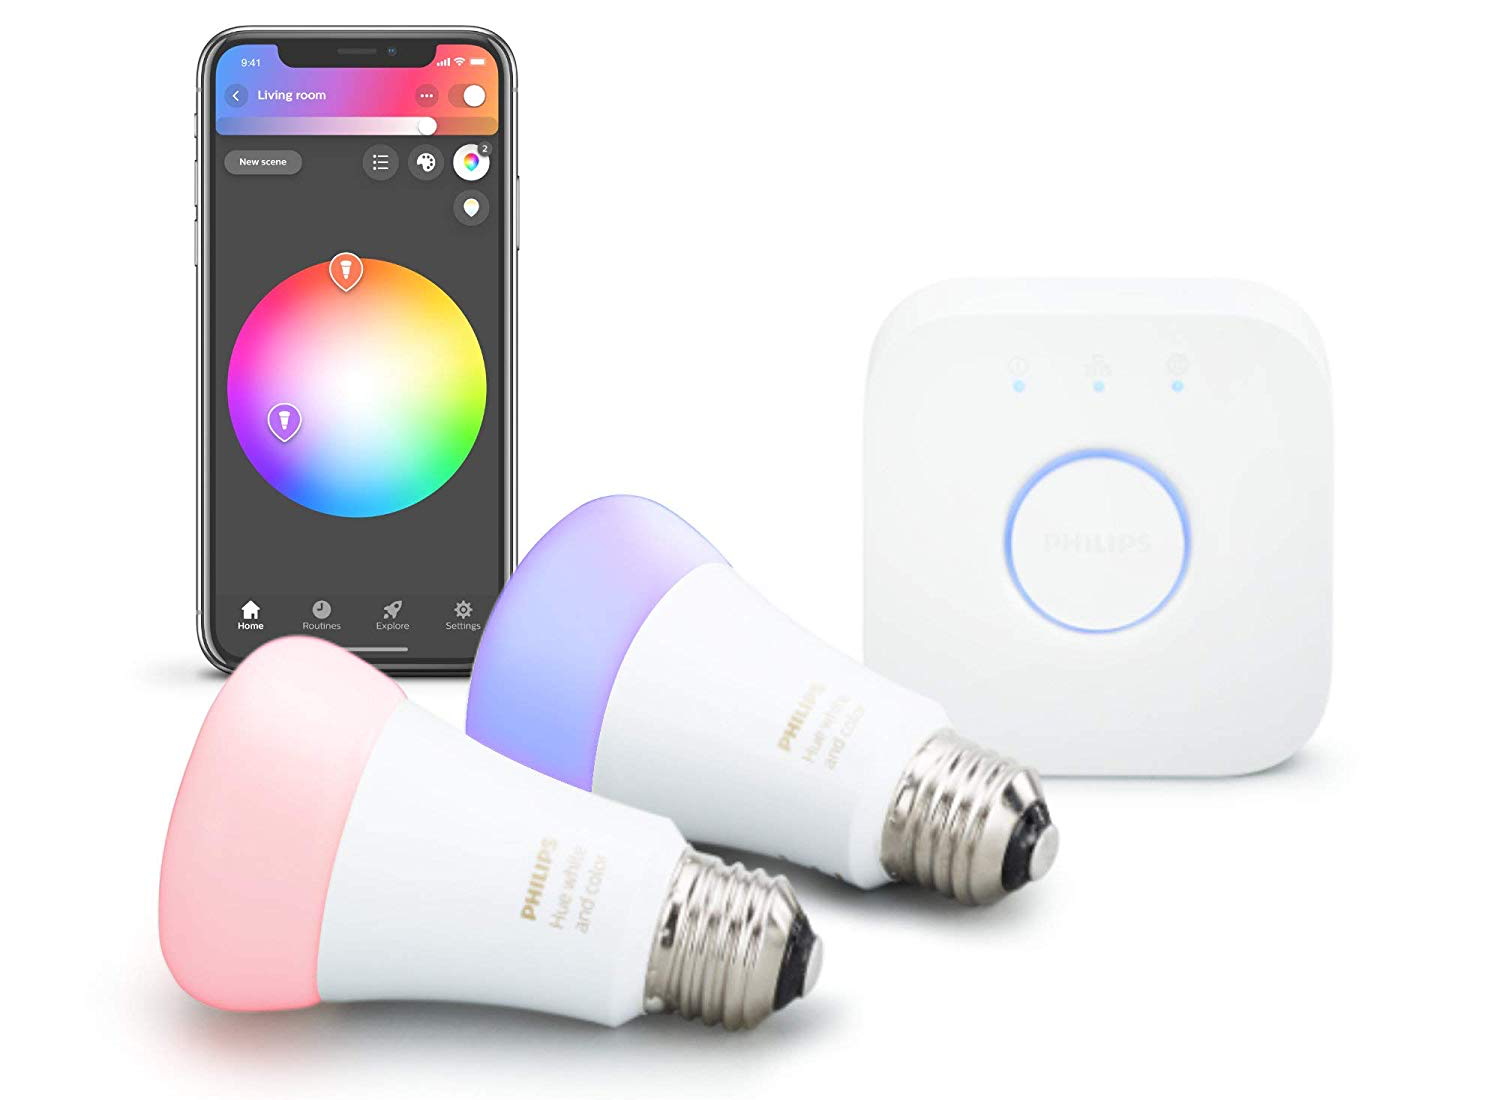 The Philips Hue 2-bulb color starter kit is almost 50% off on Amazon at just $78